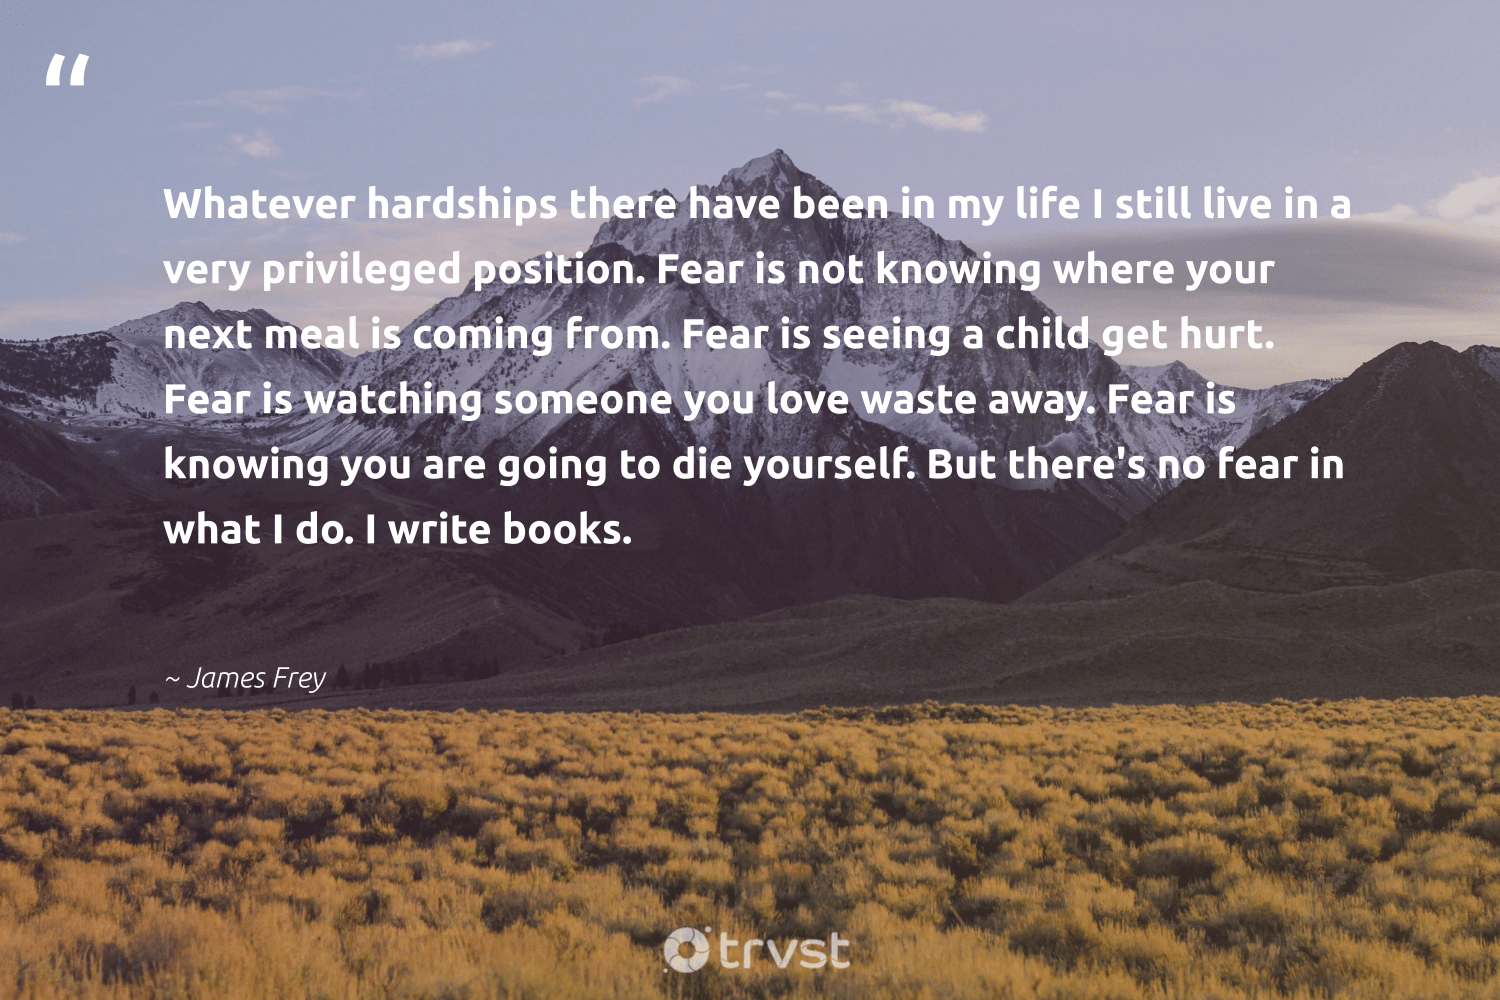 """Whatever hardships there have been in my life I still live in a very privileged position. Fear is not knowing where your next meal is coming from. Fear is seeing a child get hurt. Fear is watching someone you love waste away. Fear is knowing you are going to die yourself. But there's no fear in what I do. I write books.""  - James Frey #trvst #quotes #love #waste #futureofwork #dotherightthing #nevergiveup #dogood #begreat #socialimpact #softskills #ecoconscious"